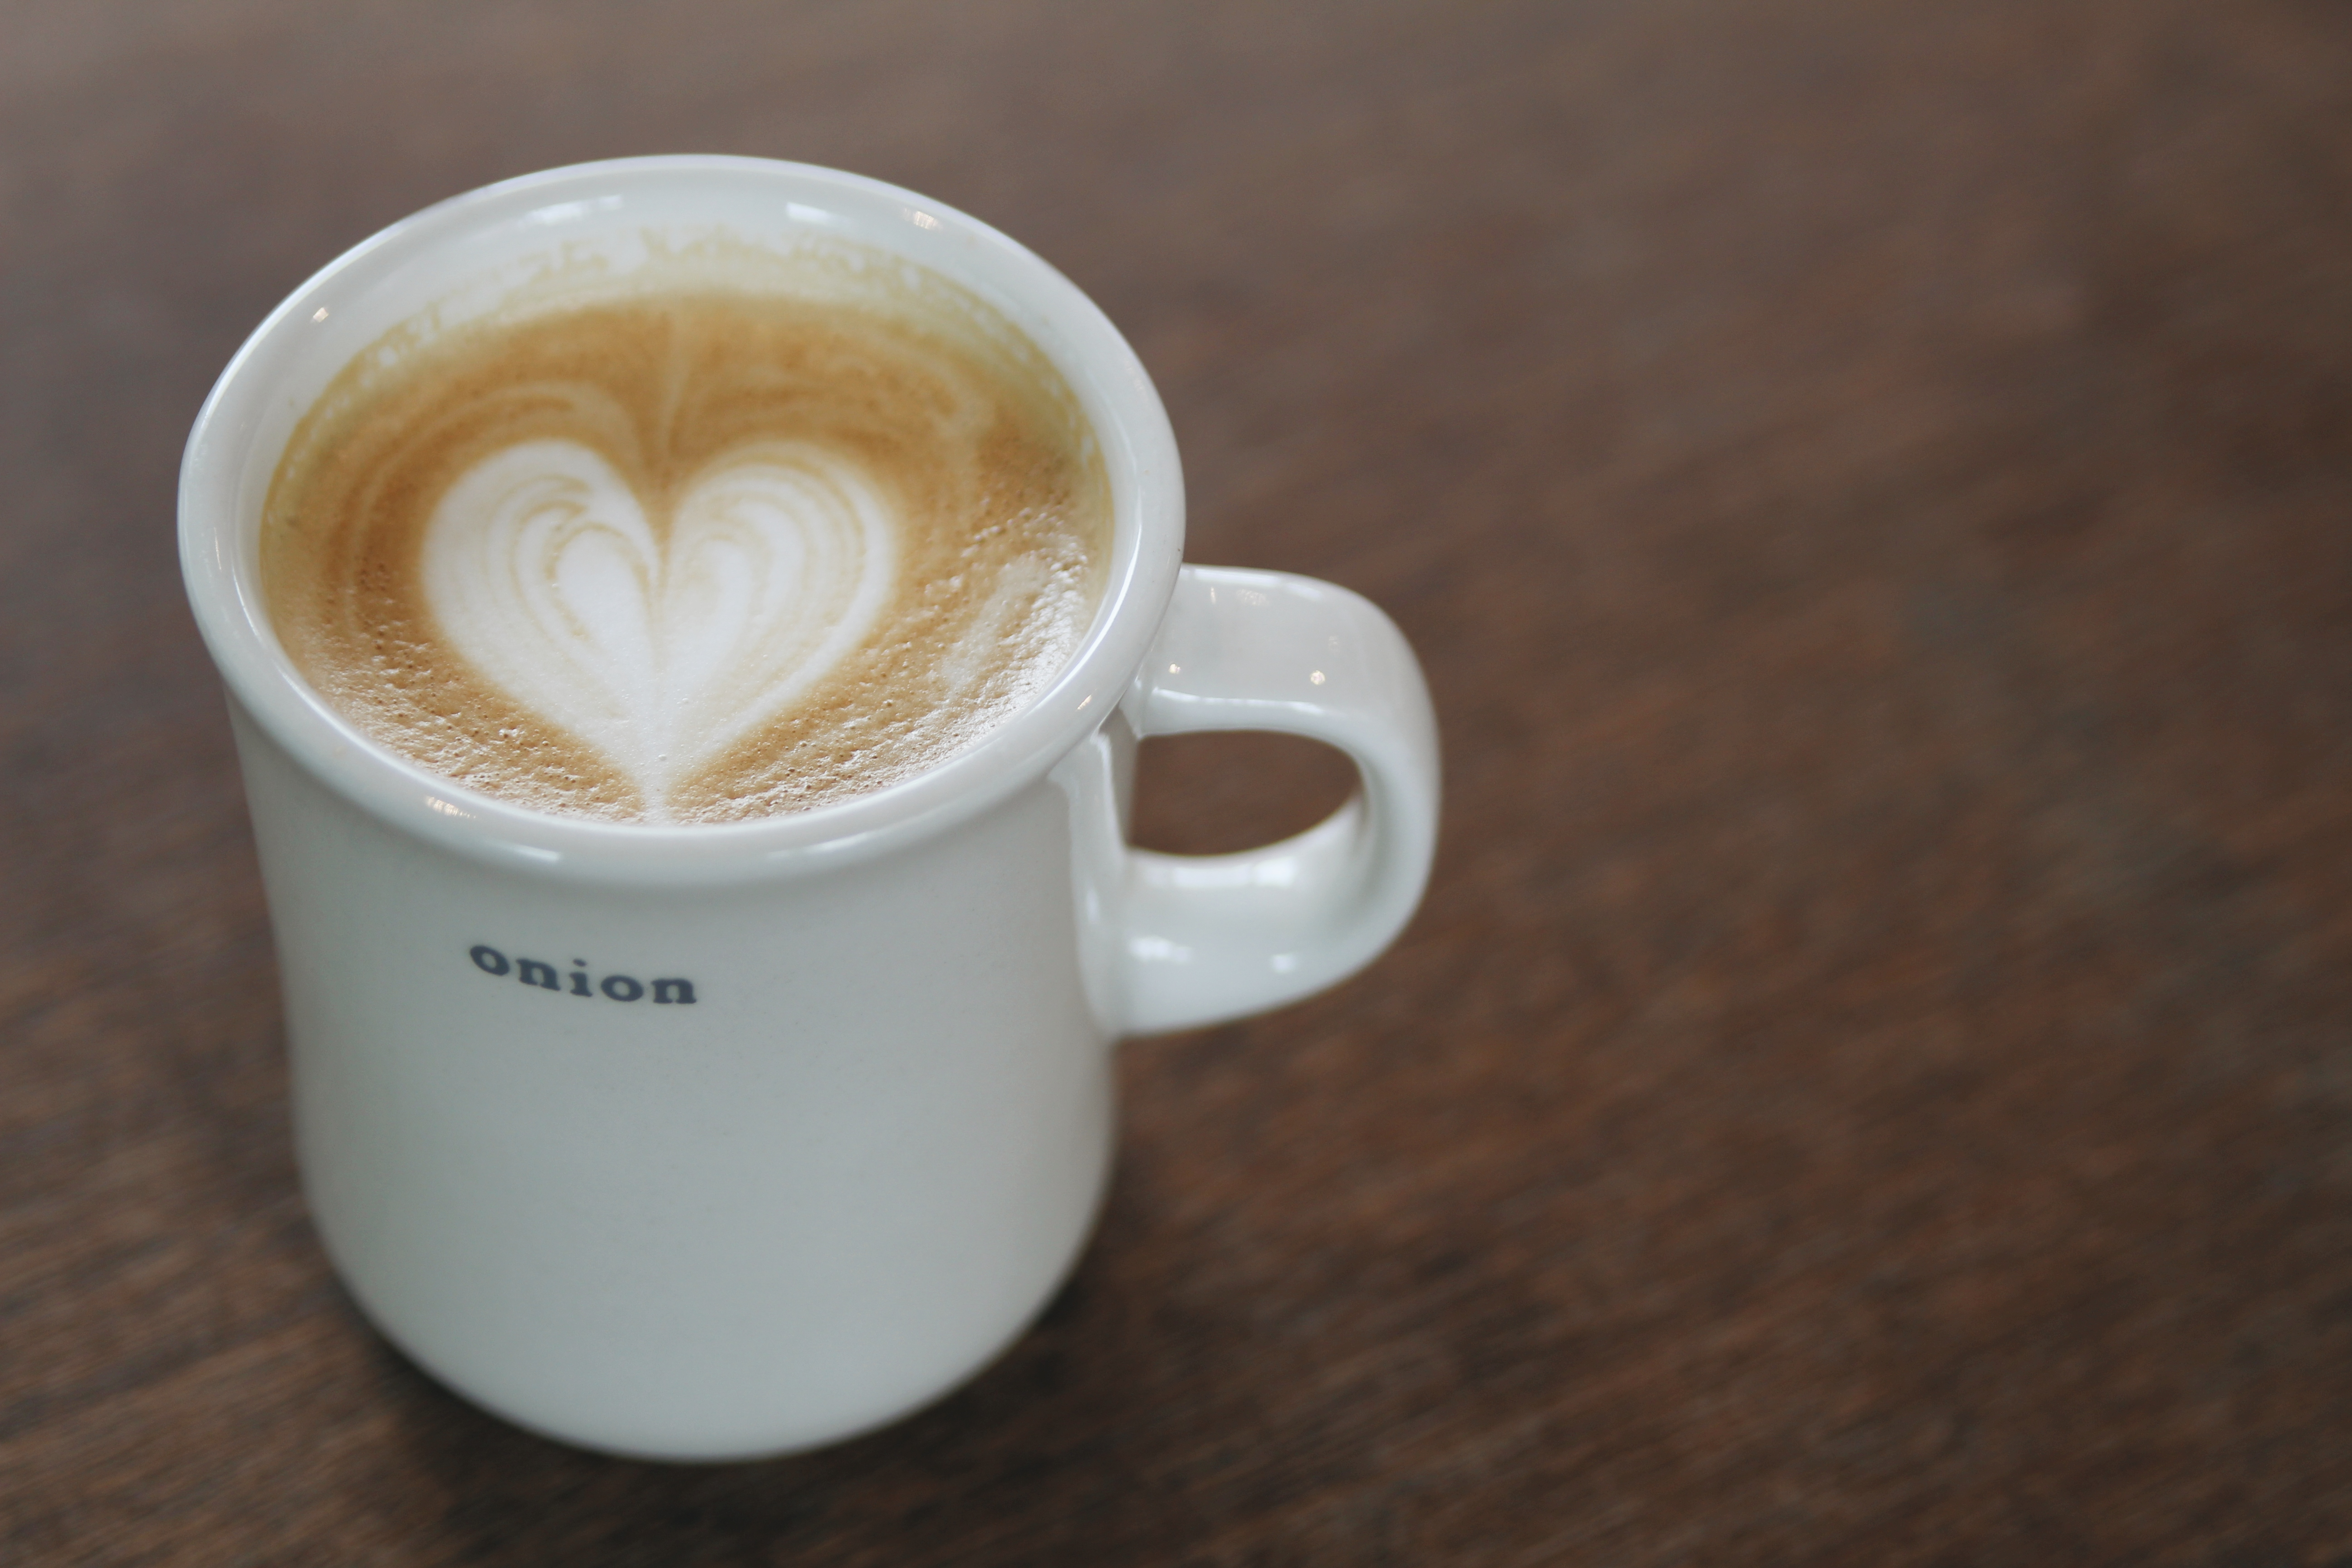 """A cafe latte in a white mug that has the word """"onion"""" written on it."""